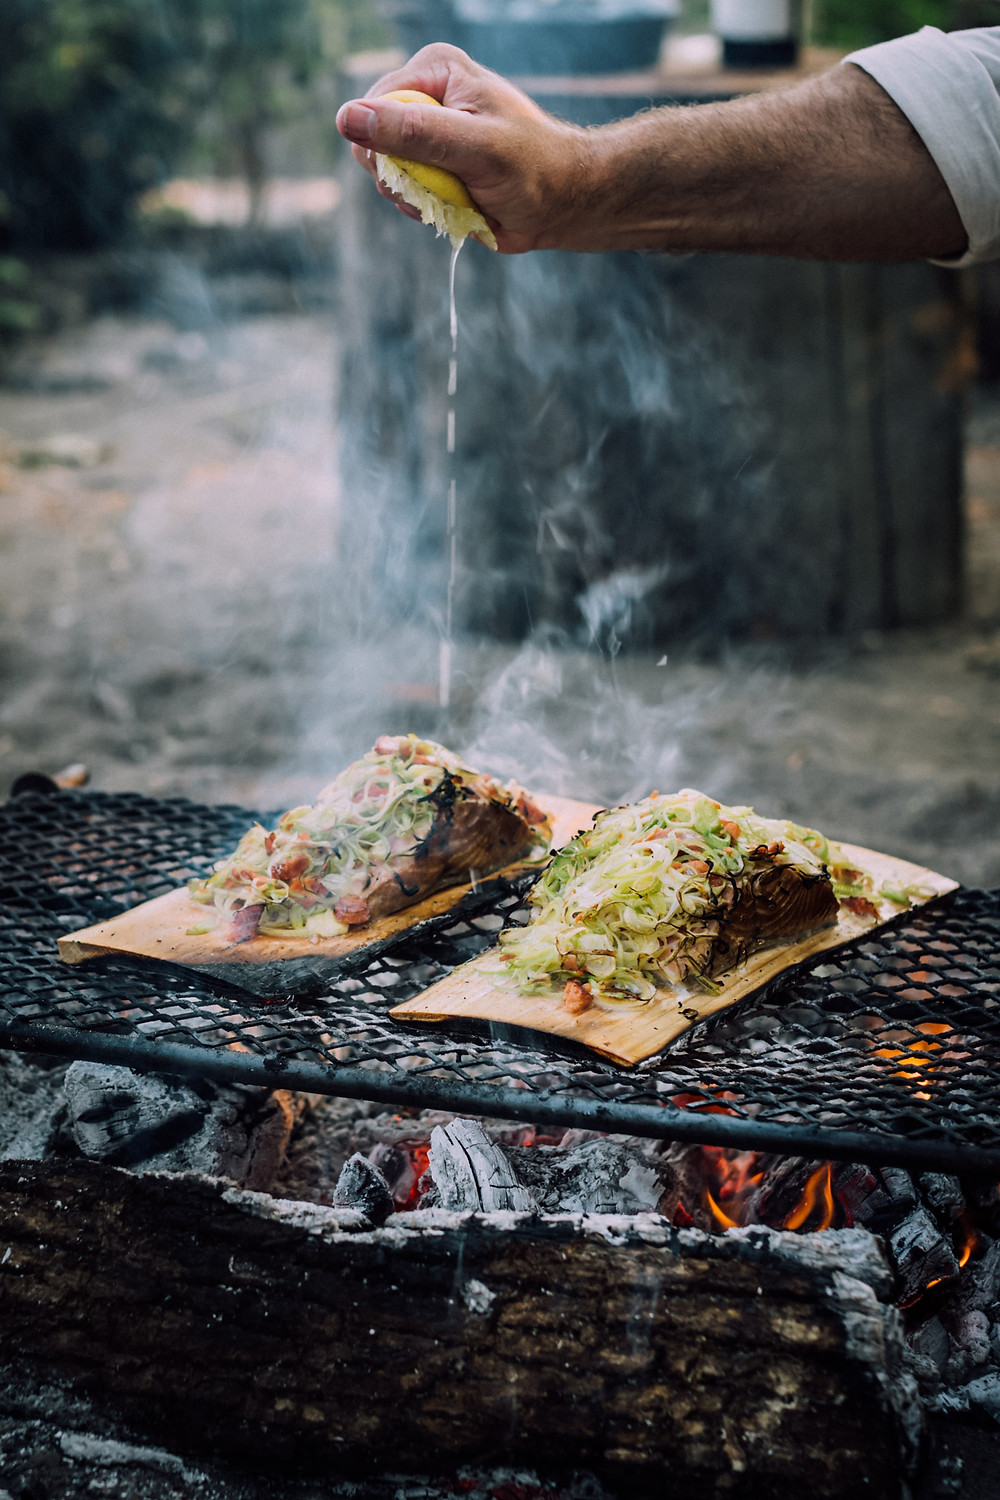 Chef squeezes lemon onto two orders of fish being smoked outdoors on cedar.